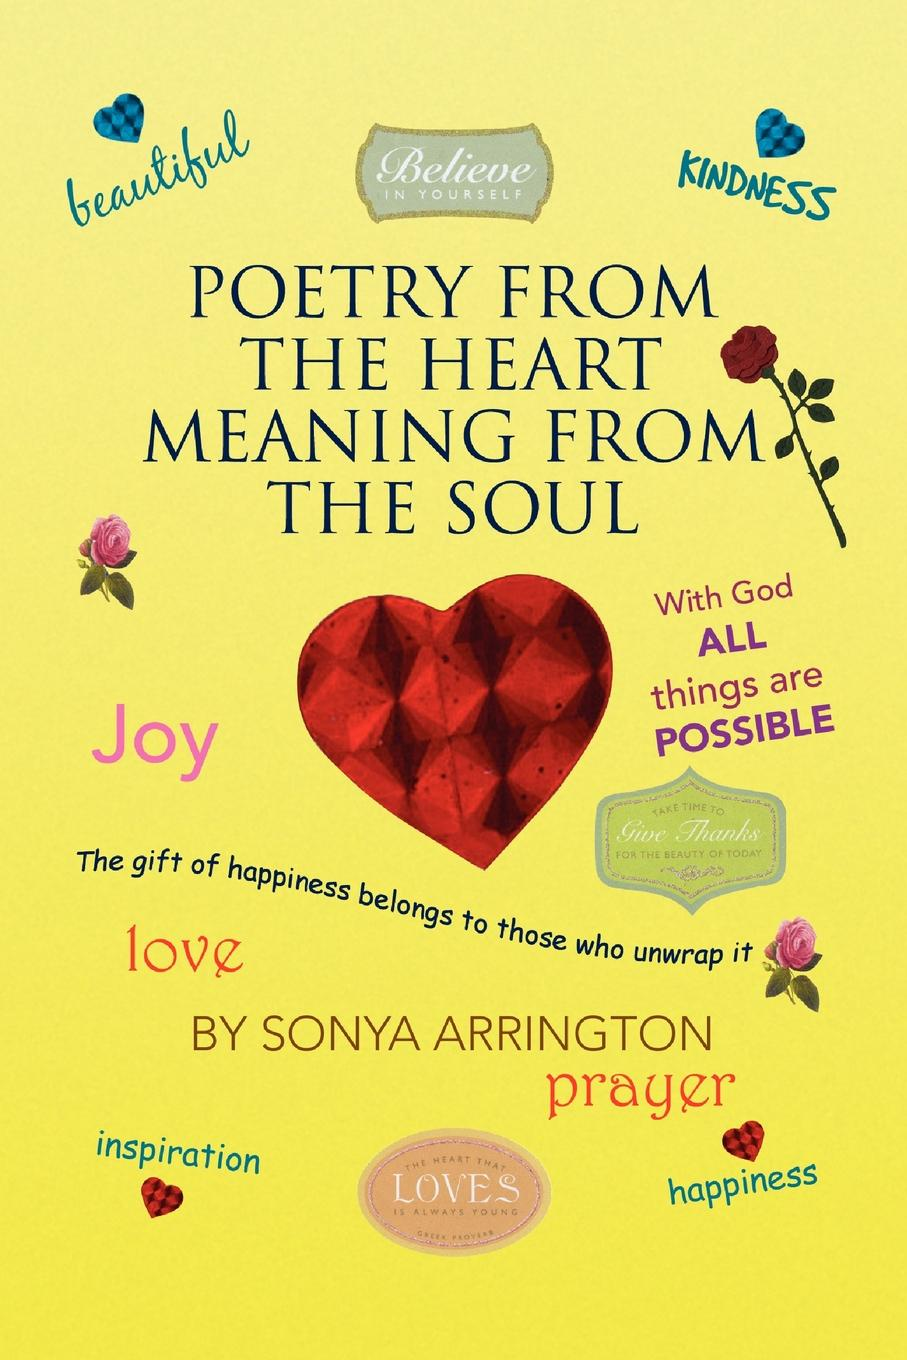 Sonya Arrington Poetry from the Heart Meaning from the Soul kevin lindsey memoirs of the heart visions from the soul